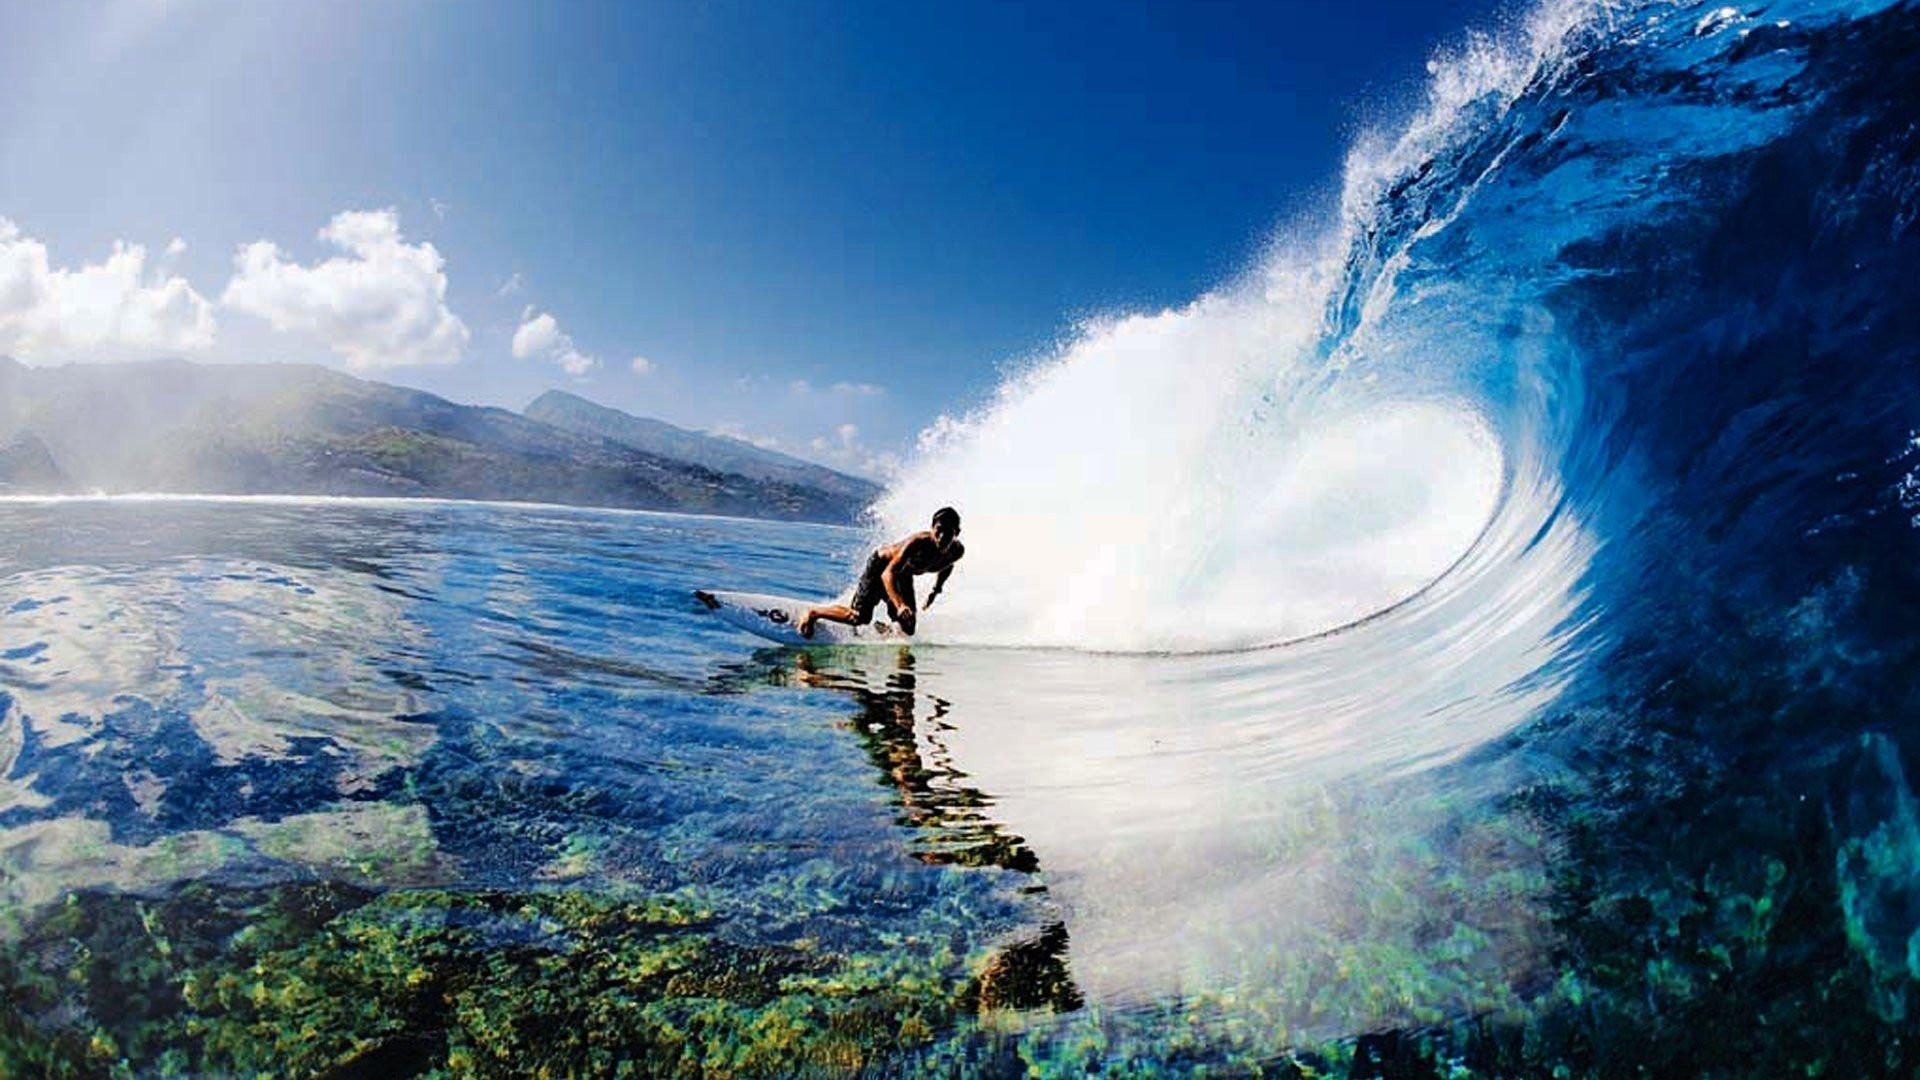 Surfing Wallpapers   Top Surfing Backgrounds   WallpaperAccess 1920x1080